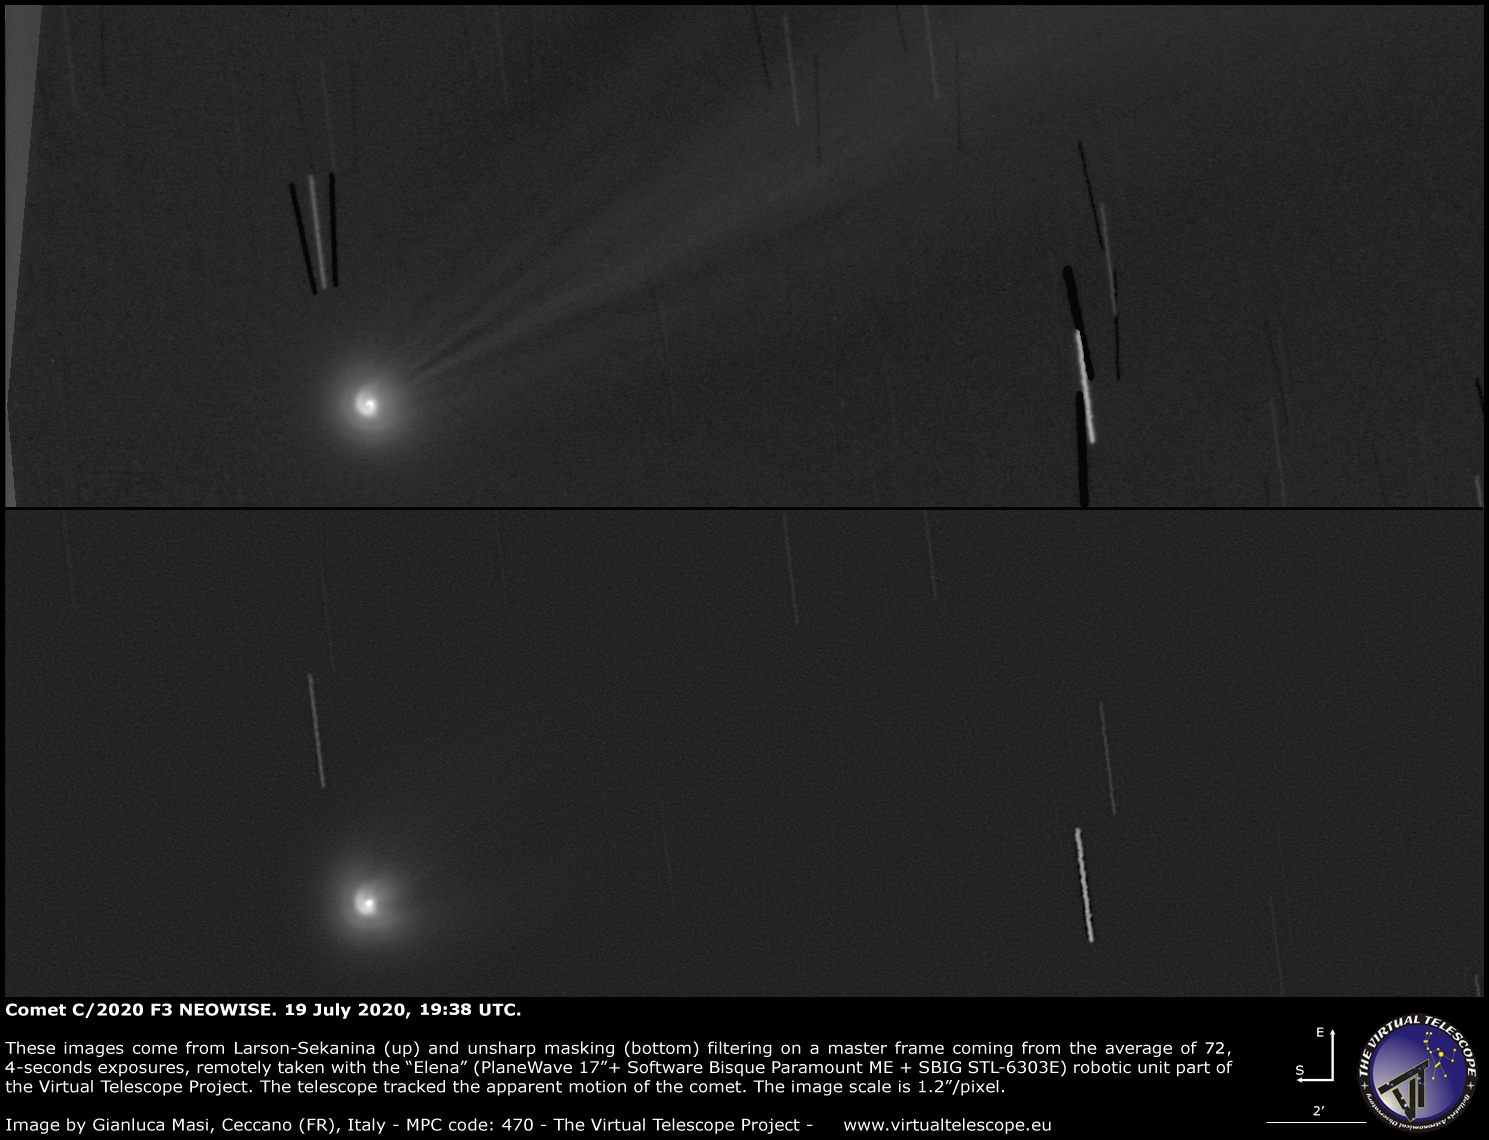 Comet C/2020 F3 NEOWISE: a close-up - 19 July 2020.